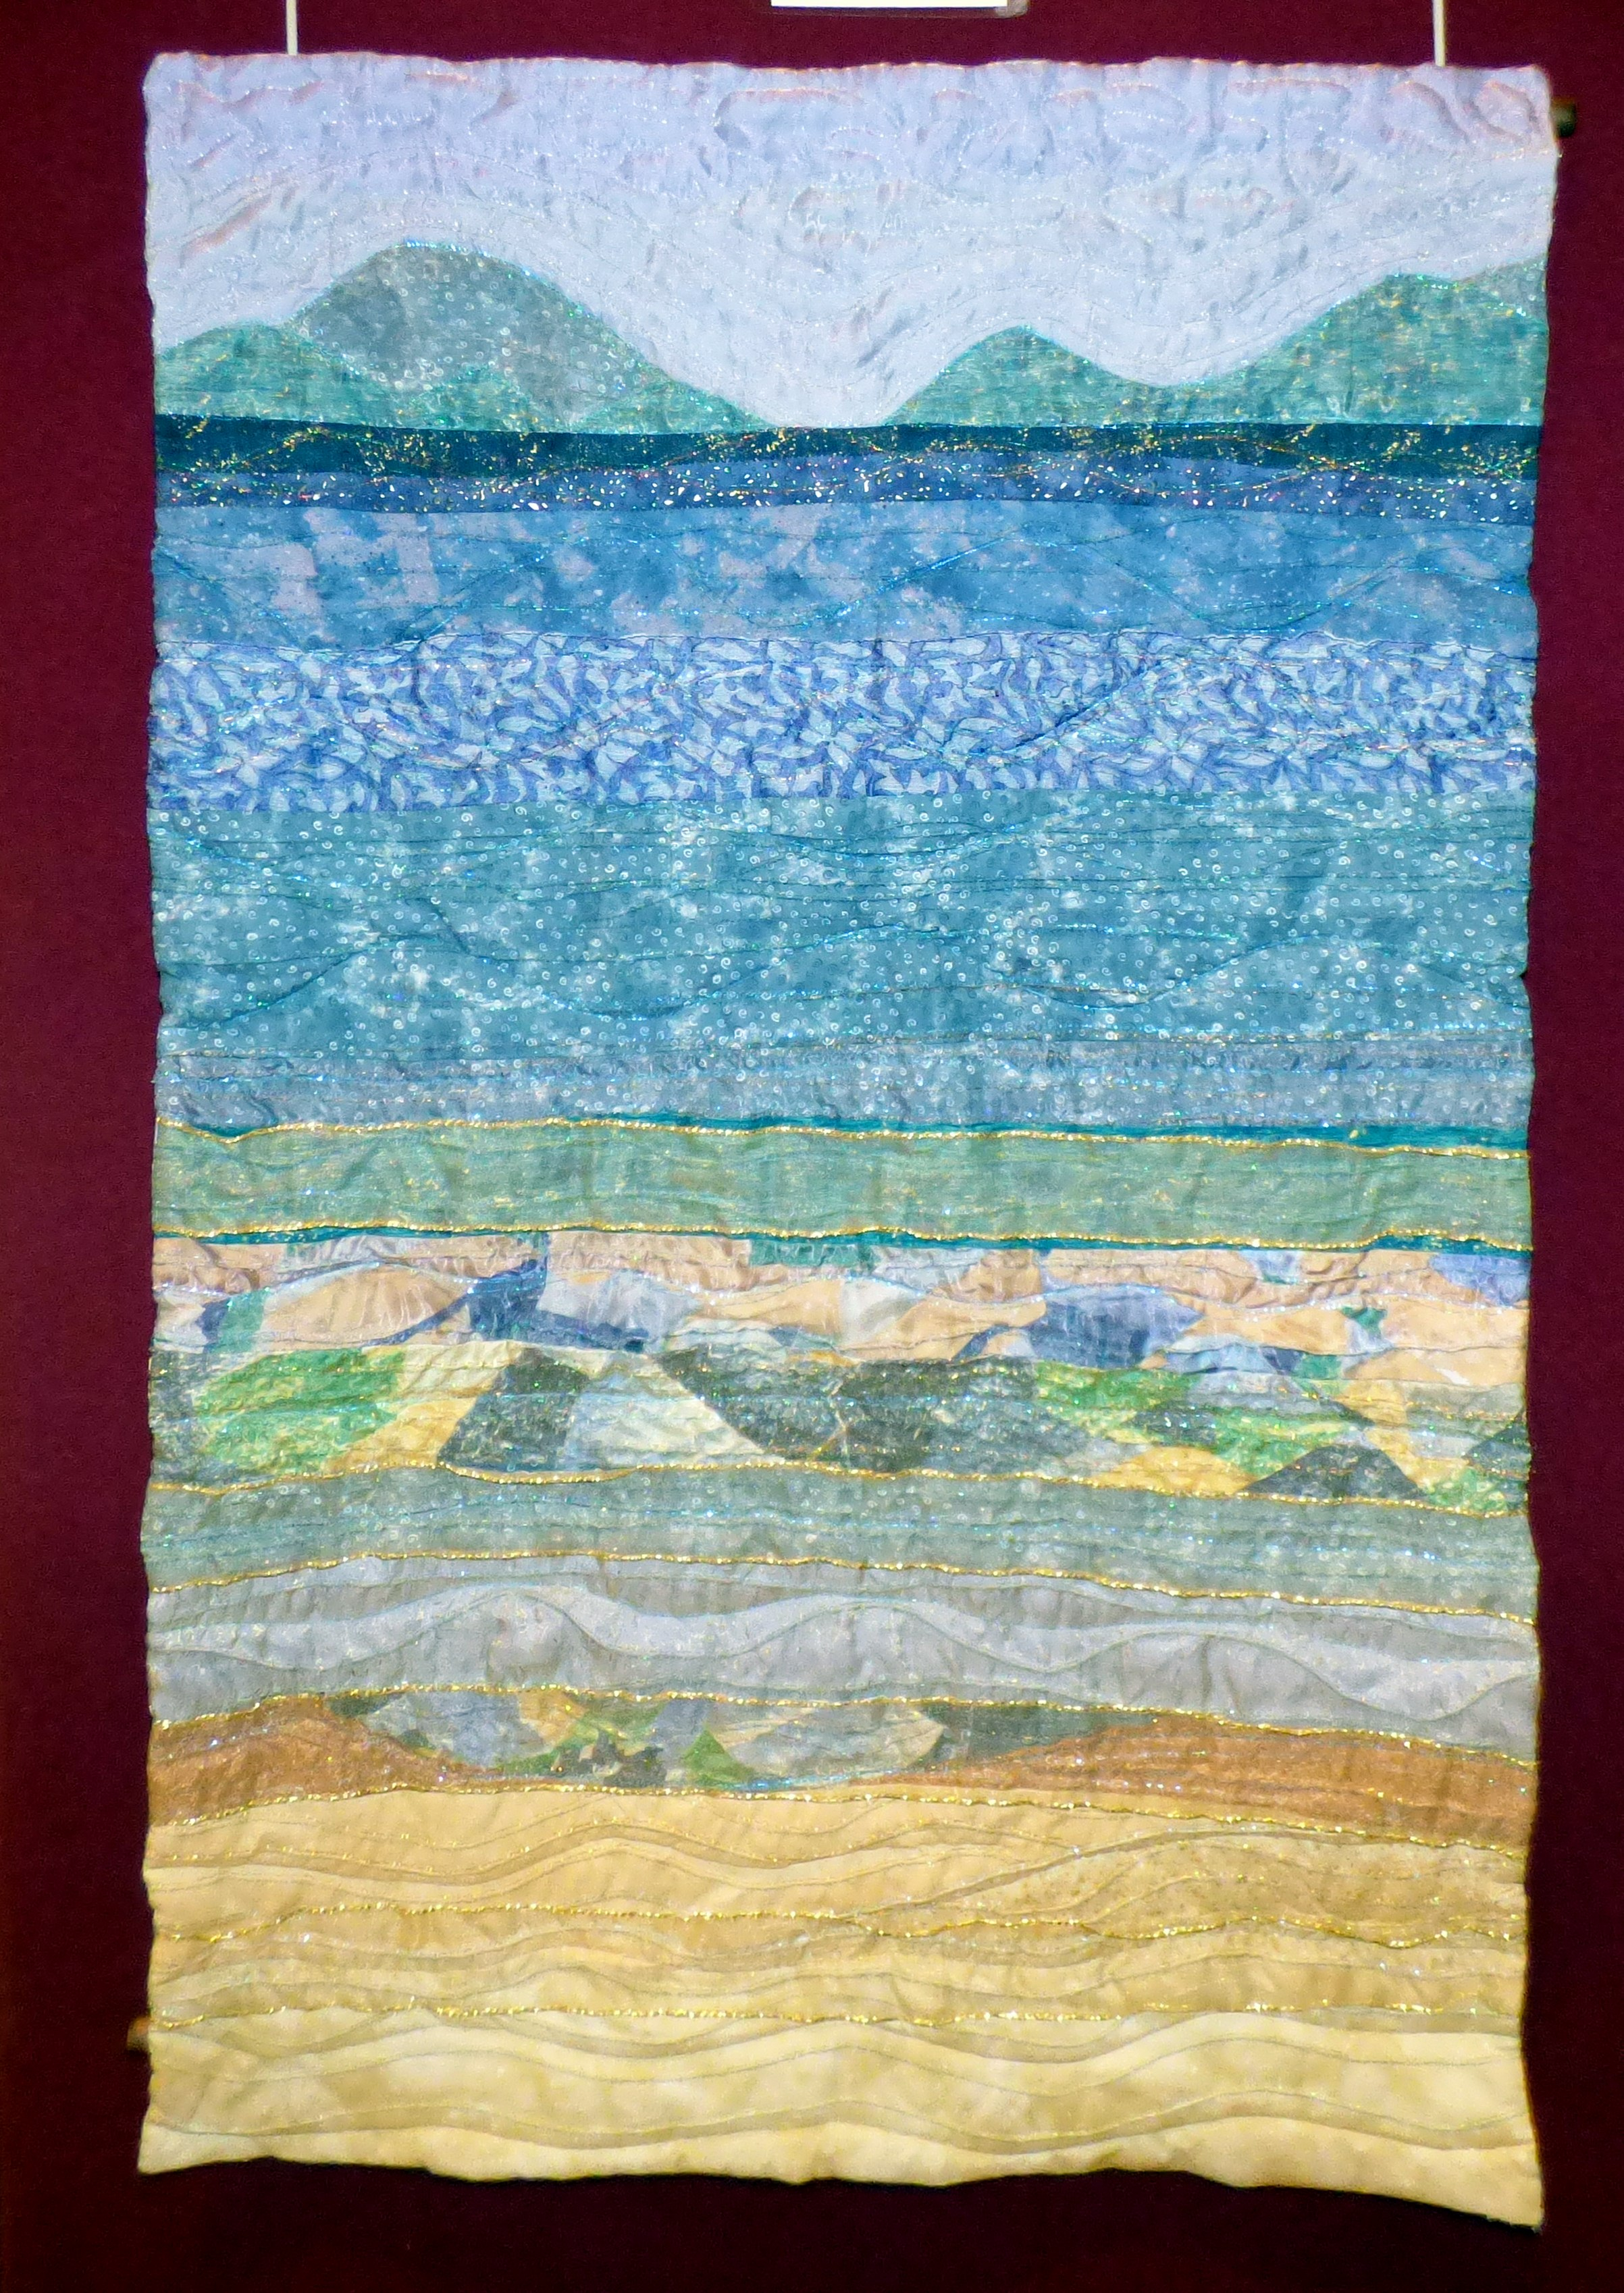 BORA BORA VIEW by Maggie Pearson,  quilted and machine embroidery, Endeavour exhibition, Liverpool Cathedral, Sept 2018